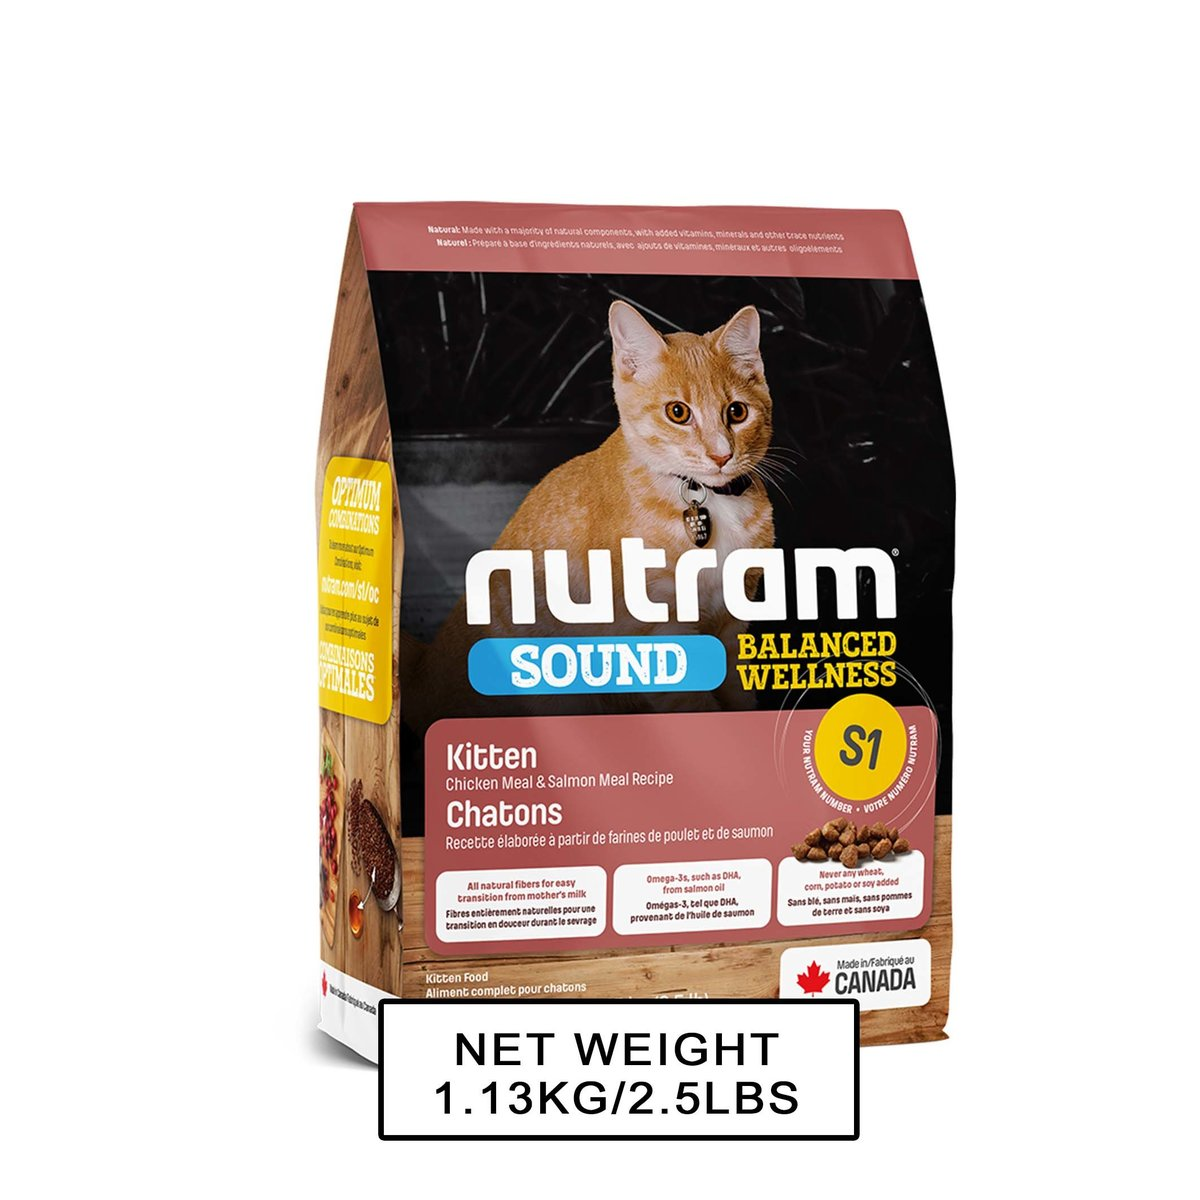 S1 Nutram Sound Balanced Wellness Kitten Food 1.13kg